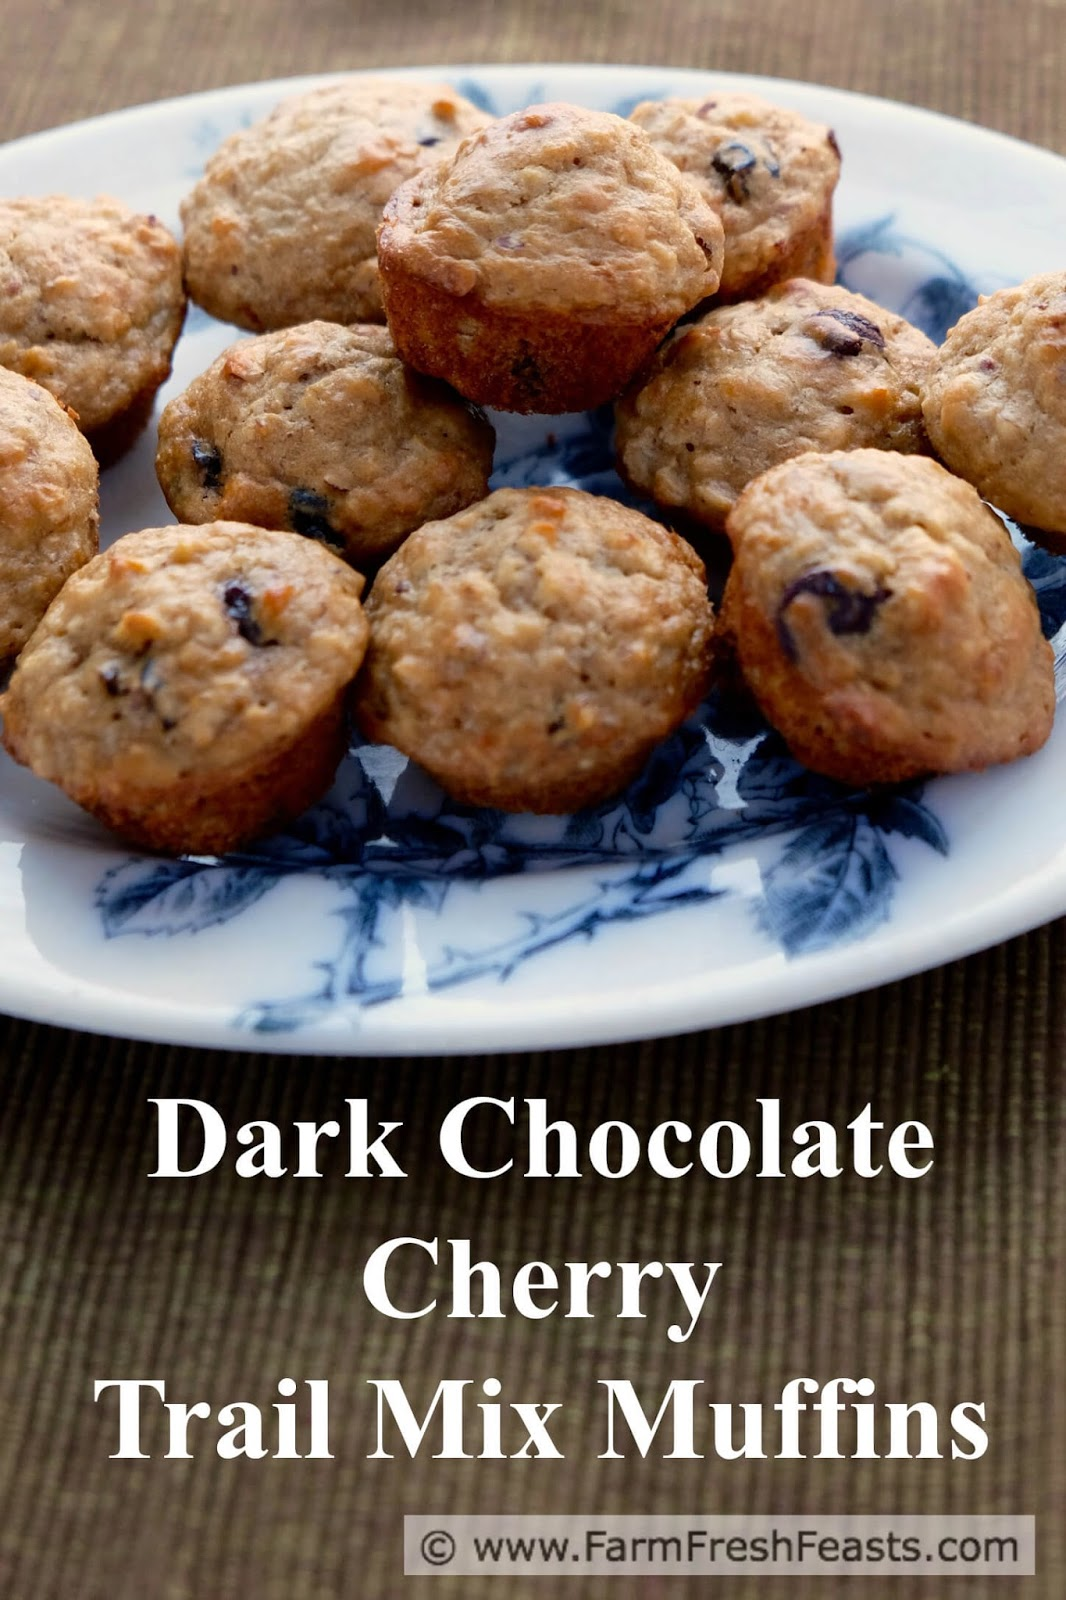 http://www.farmfreshfeasts.com/2015/04/dark-chocolate-cherry-trail-mix-muffins.html